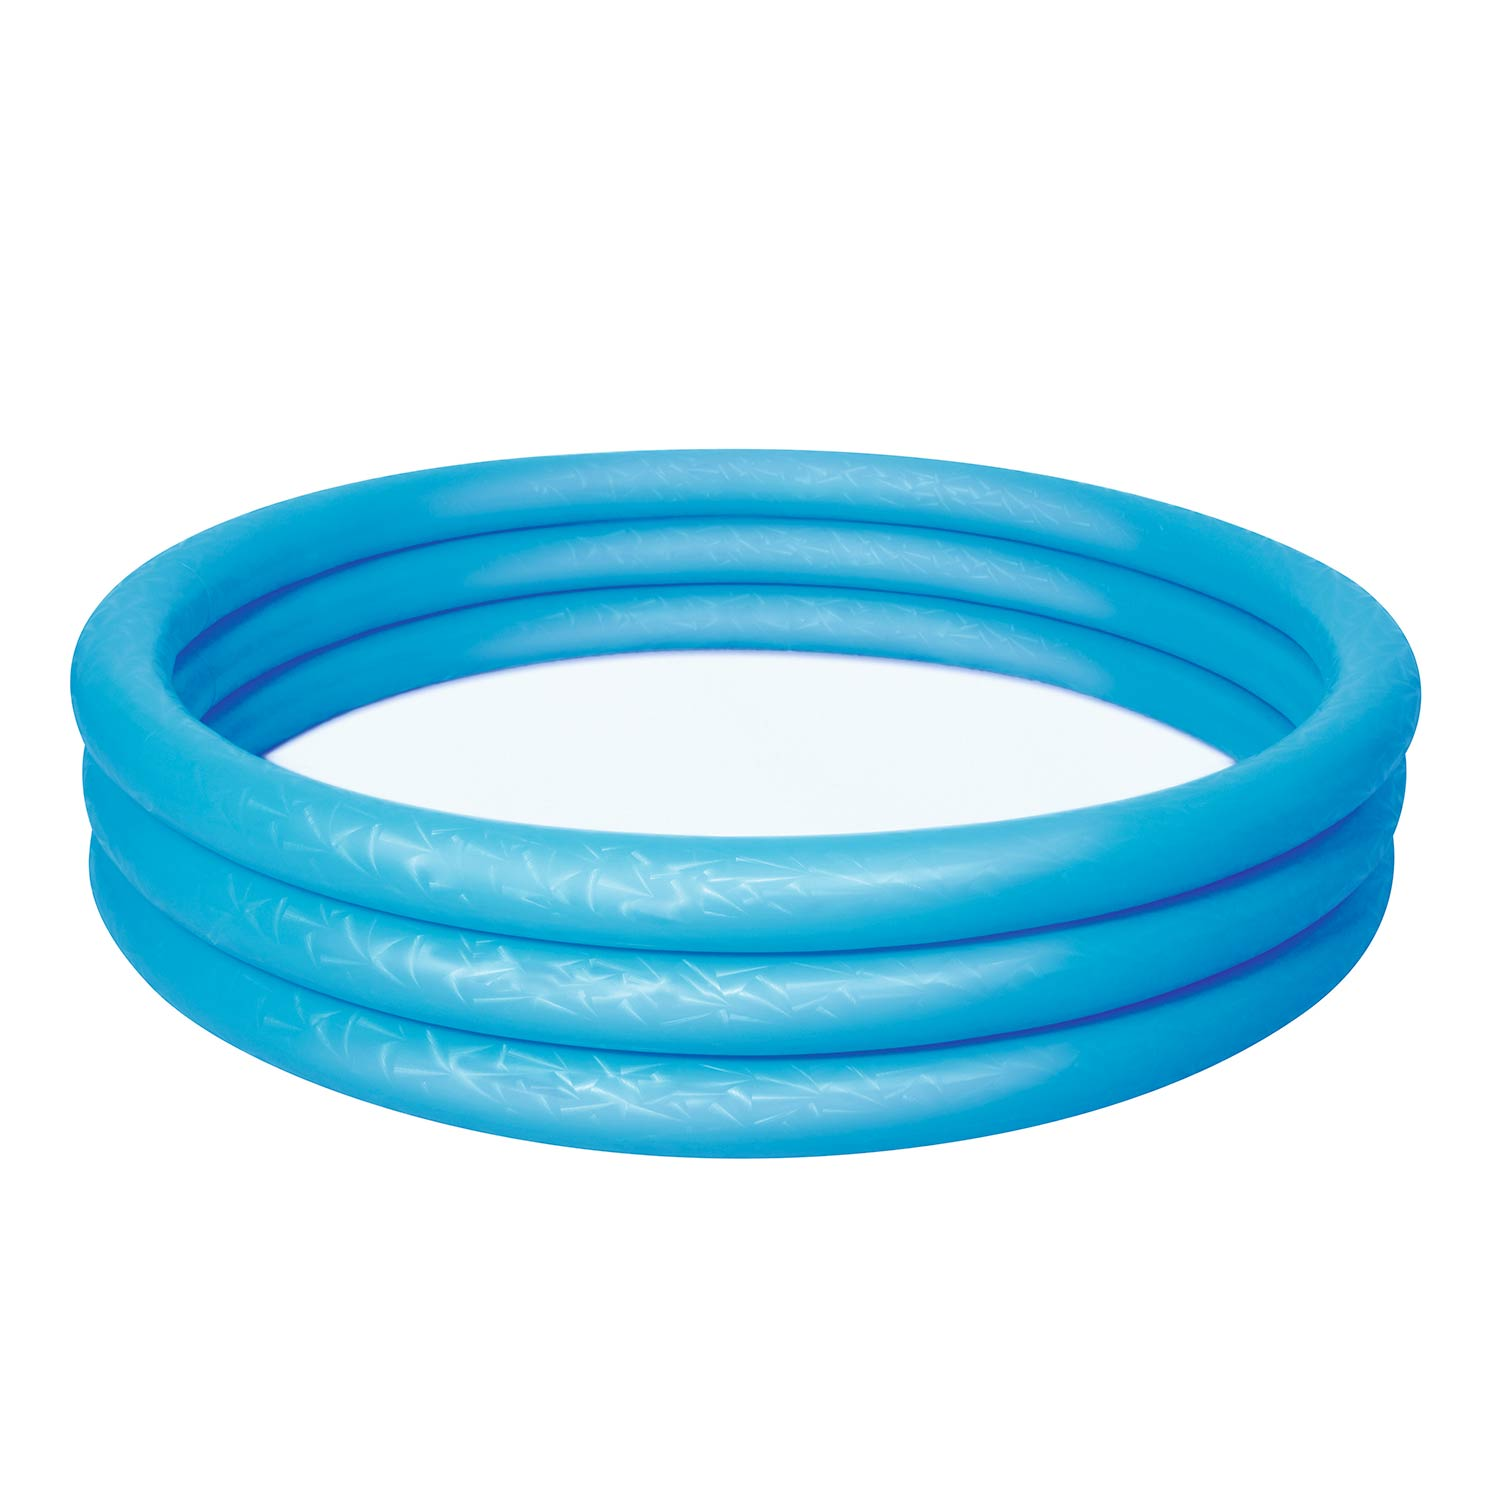 Image of   Bestway 3 Rings-pool - Ø 152 cm